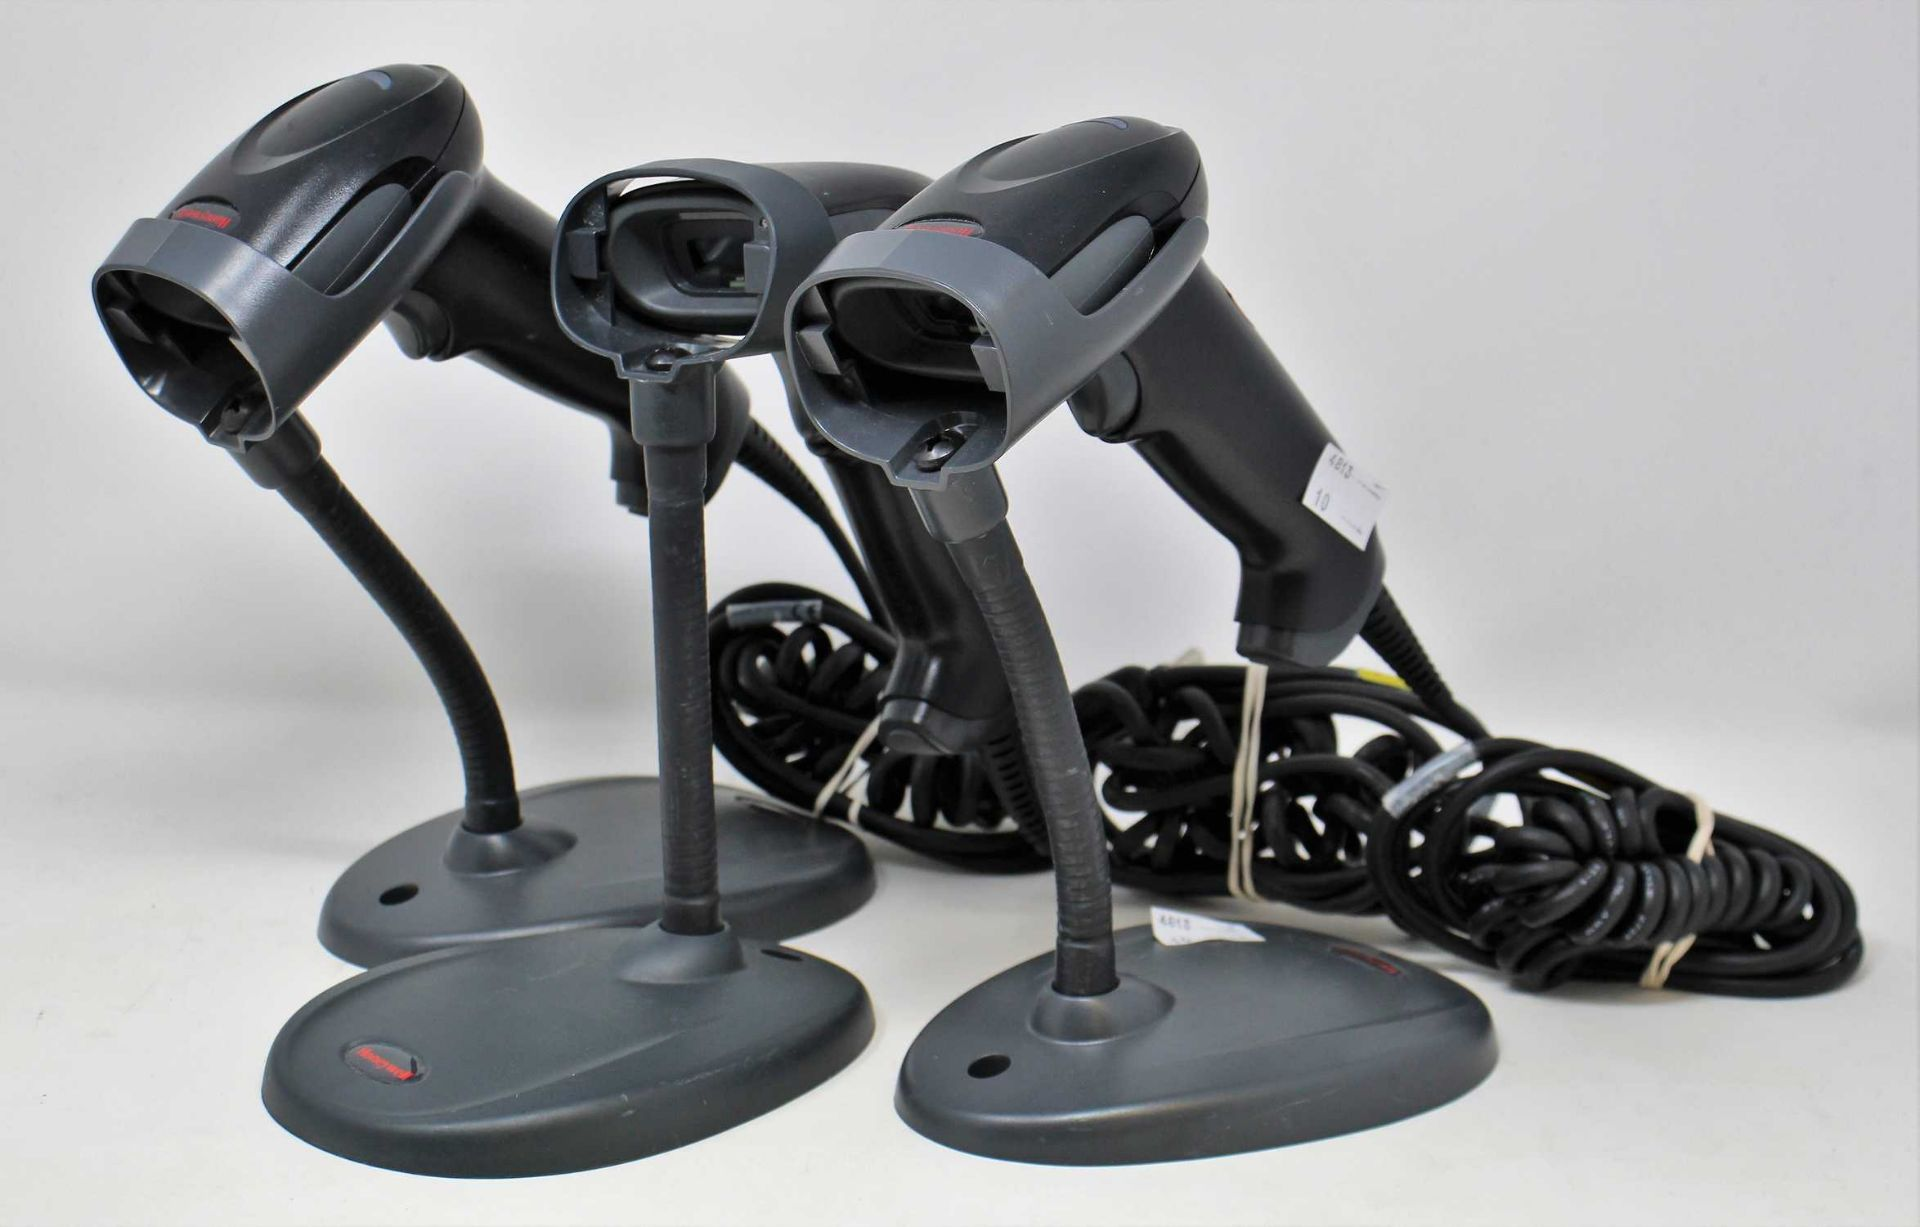 Three pre-owned Honeywell Voyager 1250g USB Barcode Scanners (P/N: 1250g-2) with stands.